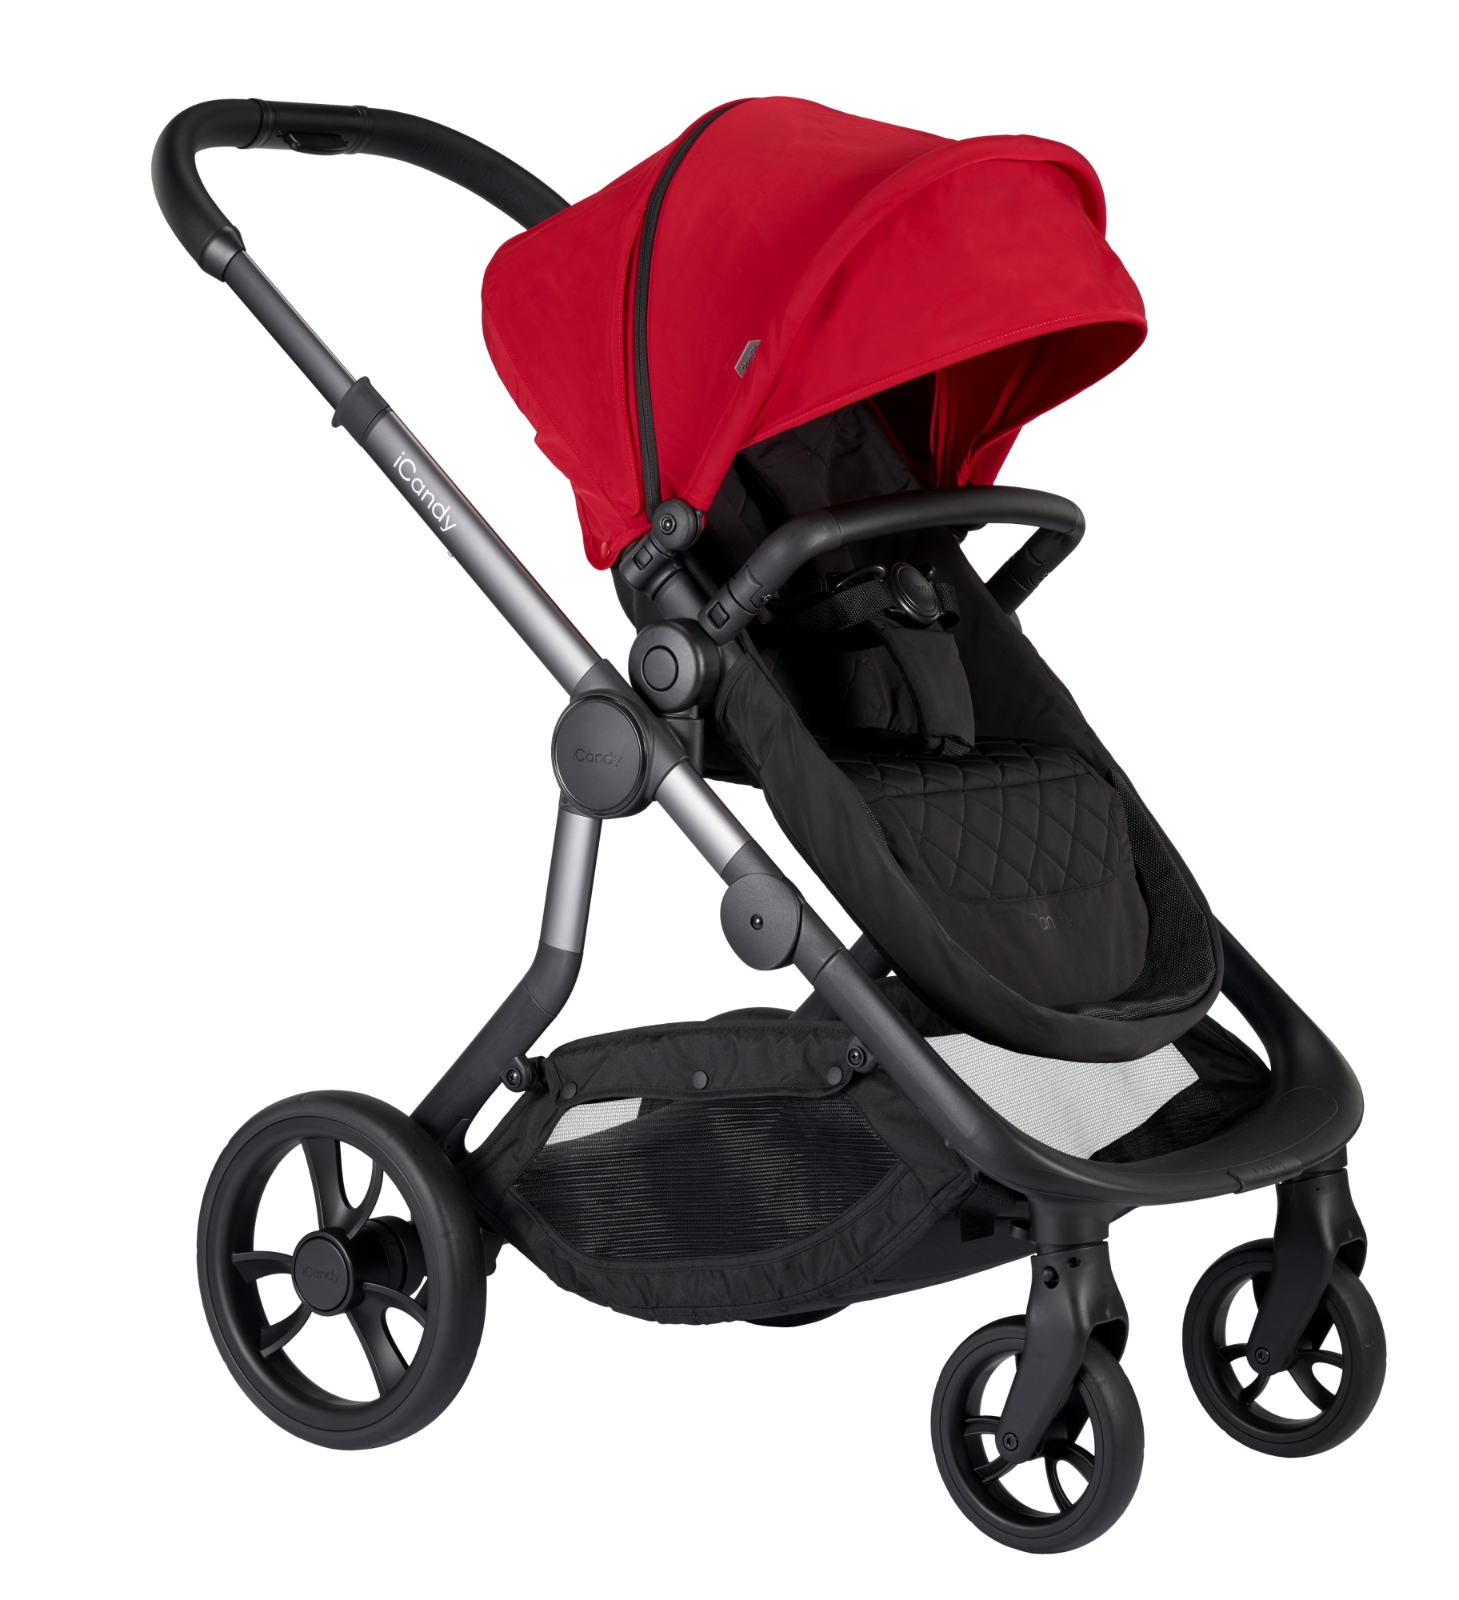 iCandy Orange Pushchair & Carrycot - Magma